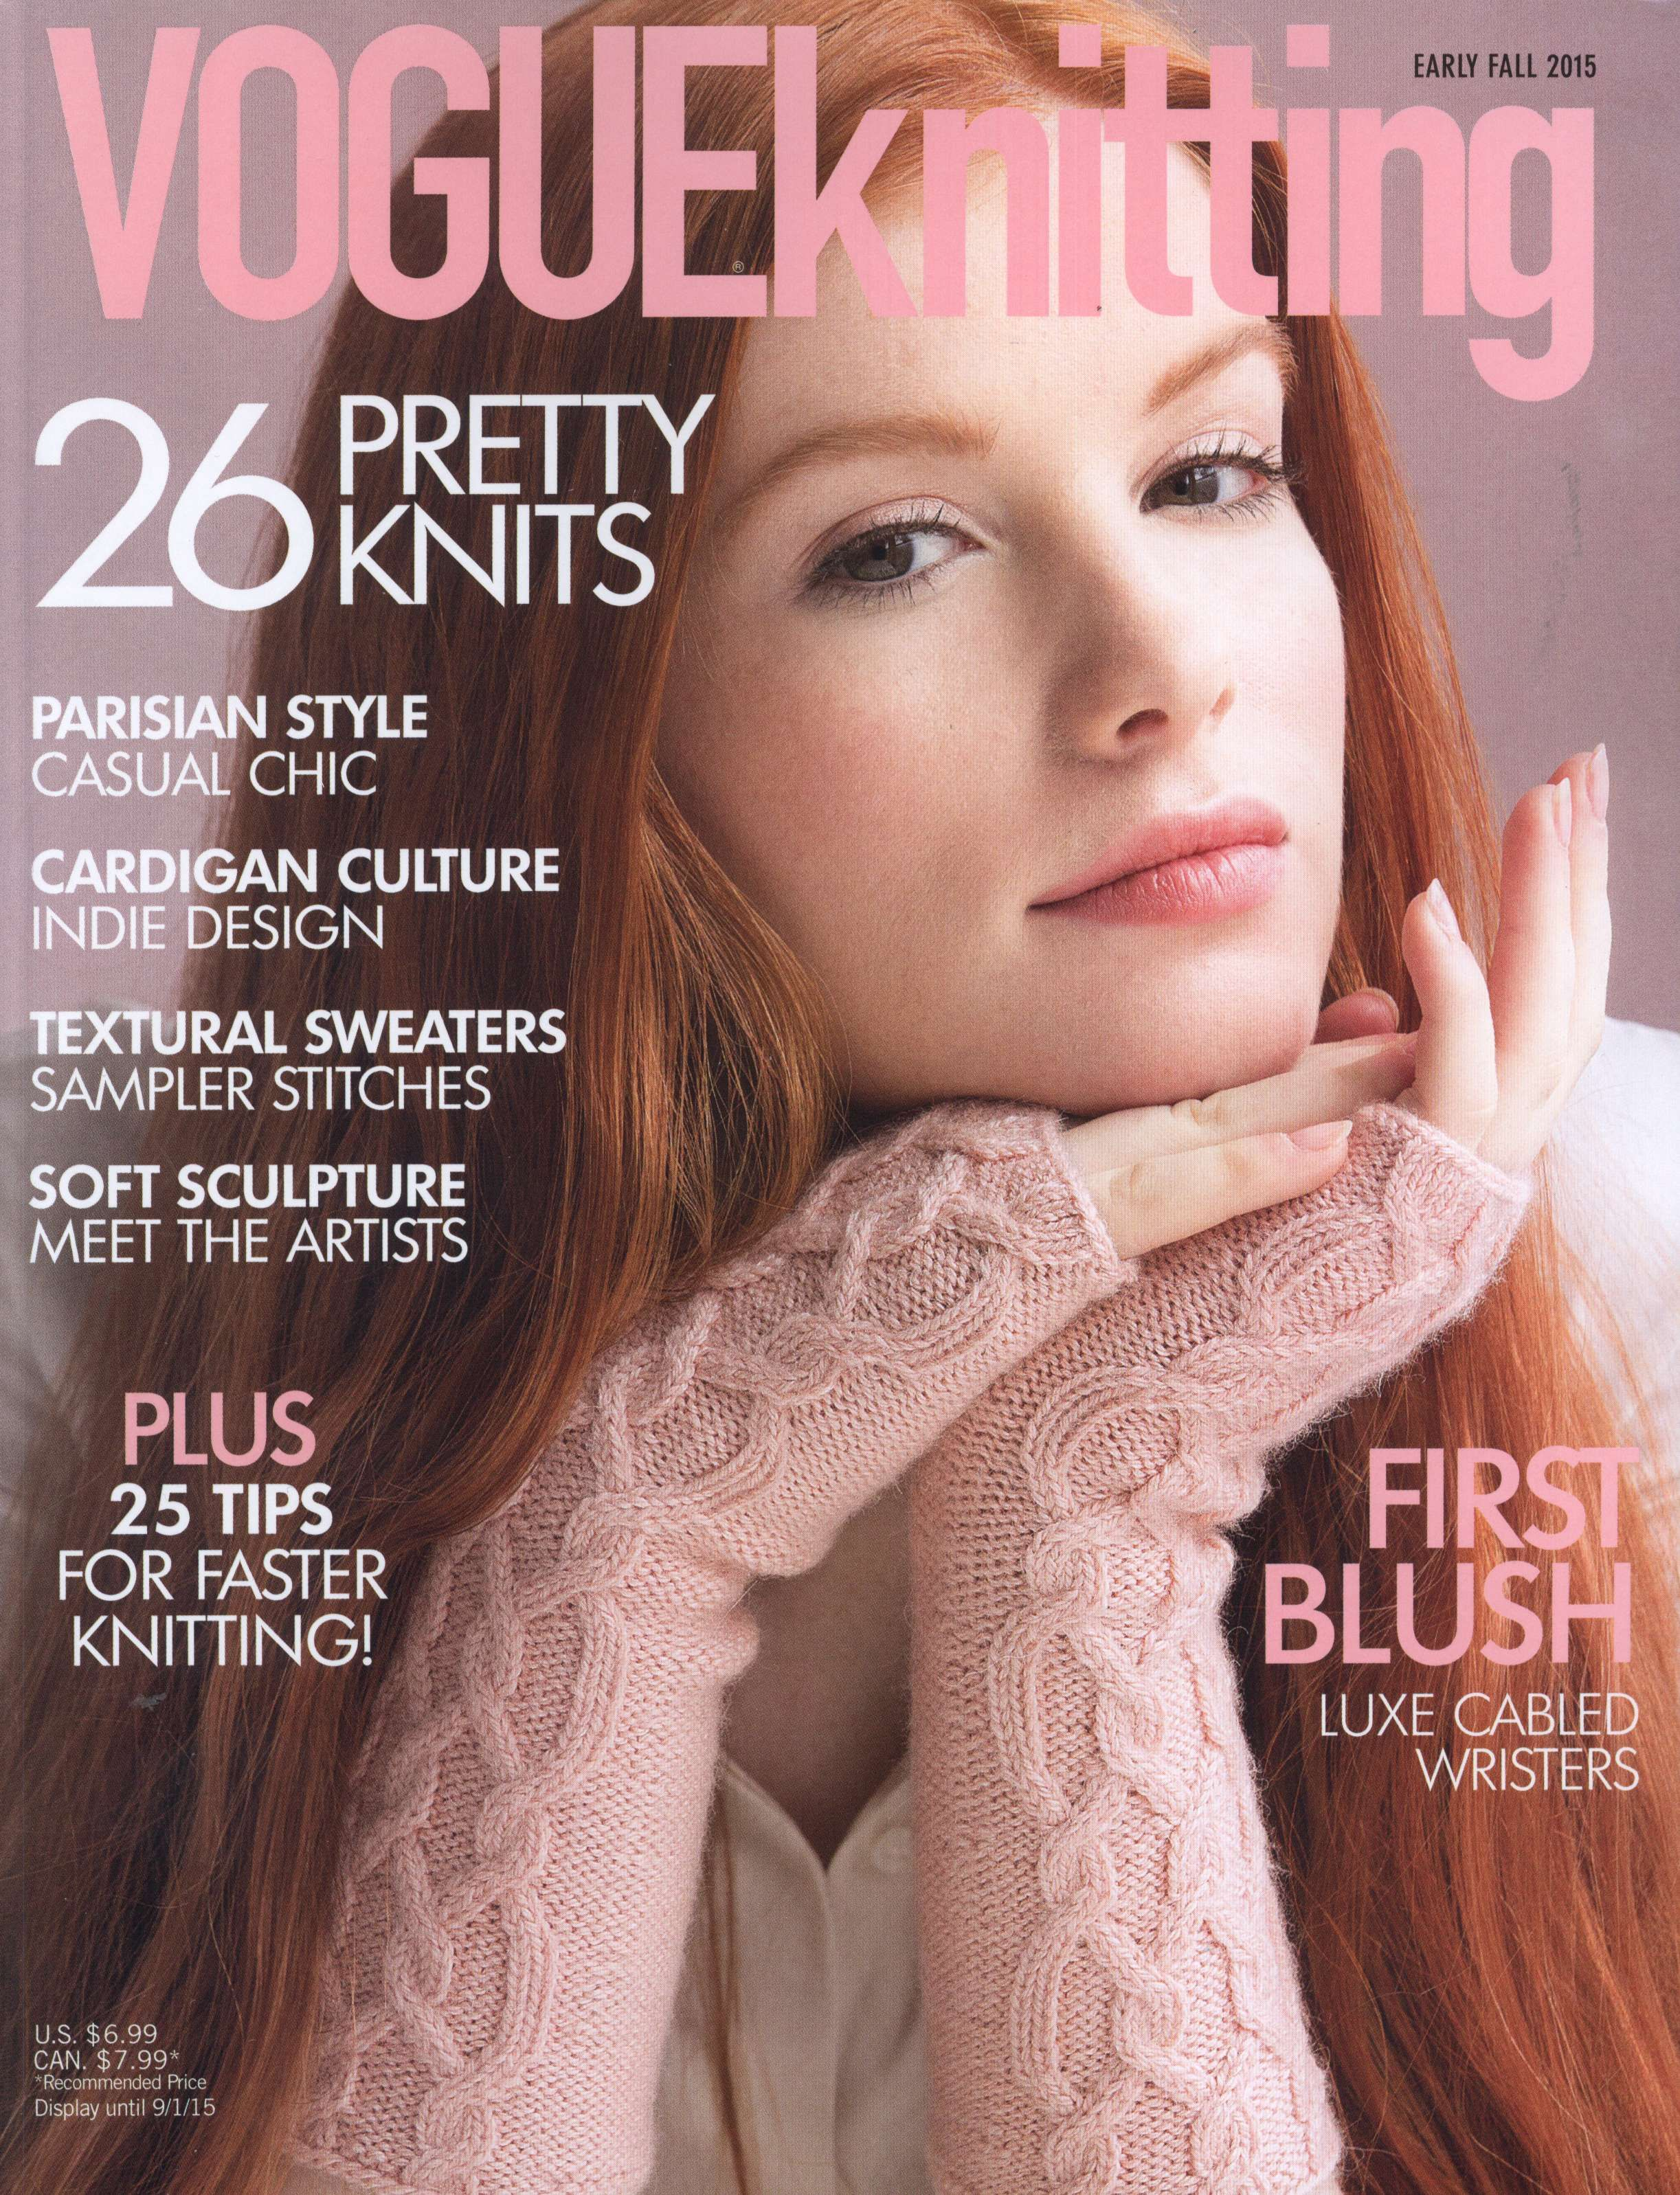 Vogue knitting Early Fall 2015 Dl